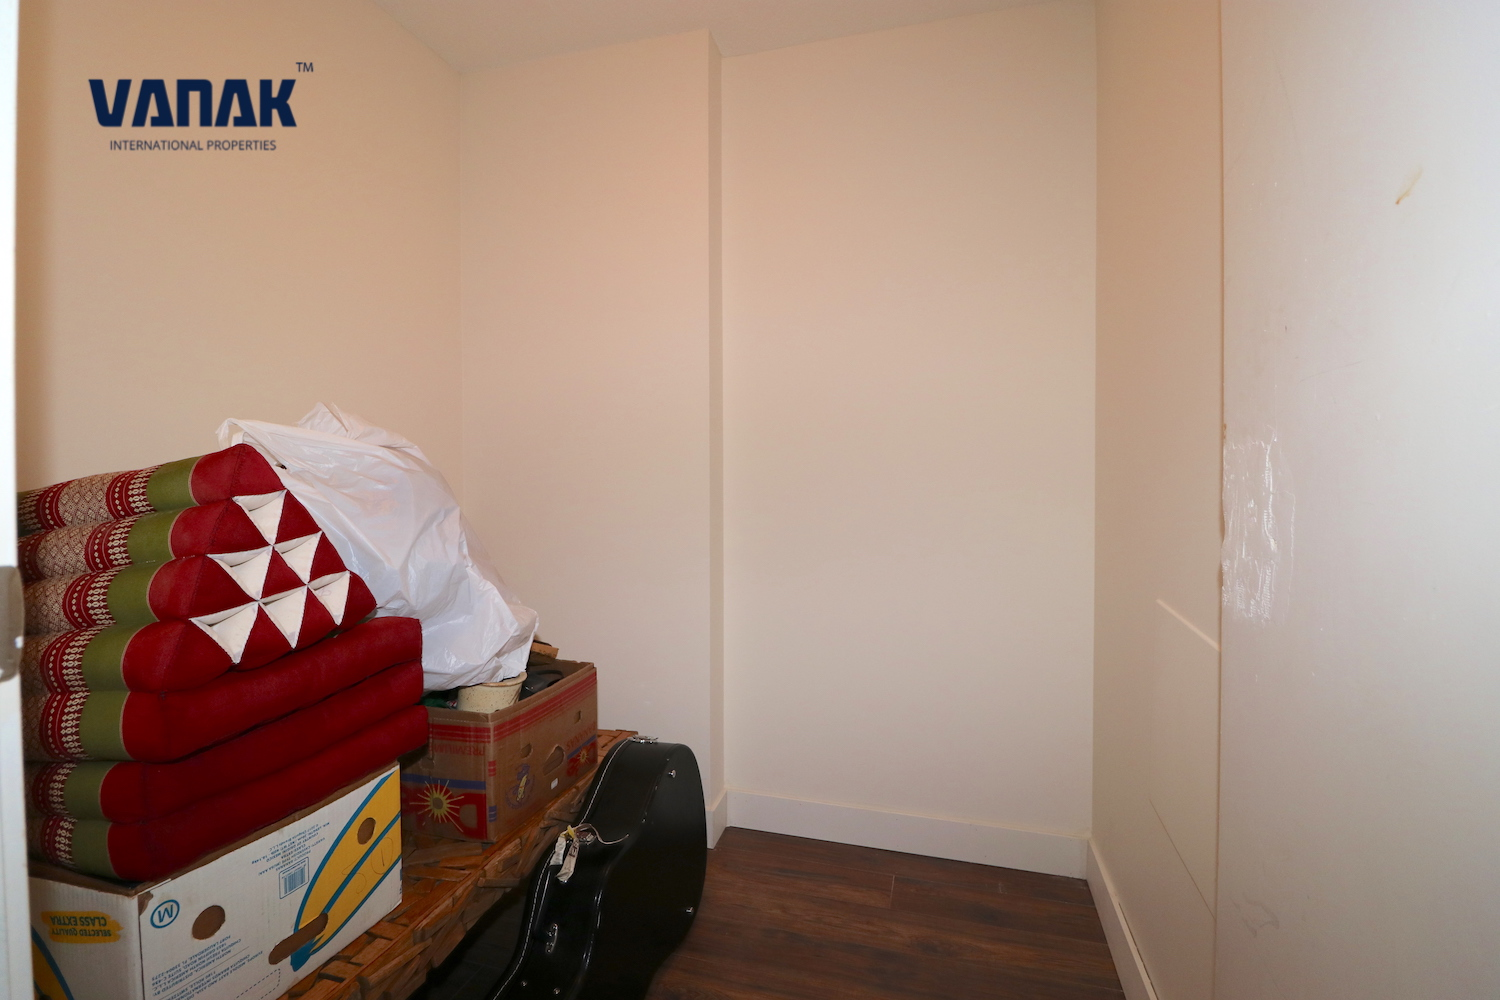 Taylor Street 555,Vancouver,BC,Canada,1 Bedroom Bedrooms,1 BathroomBathrooms,Apartment,The Taylor,555,16,1283